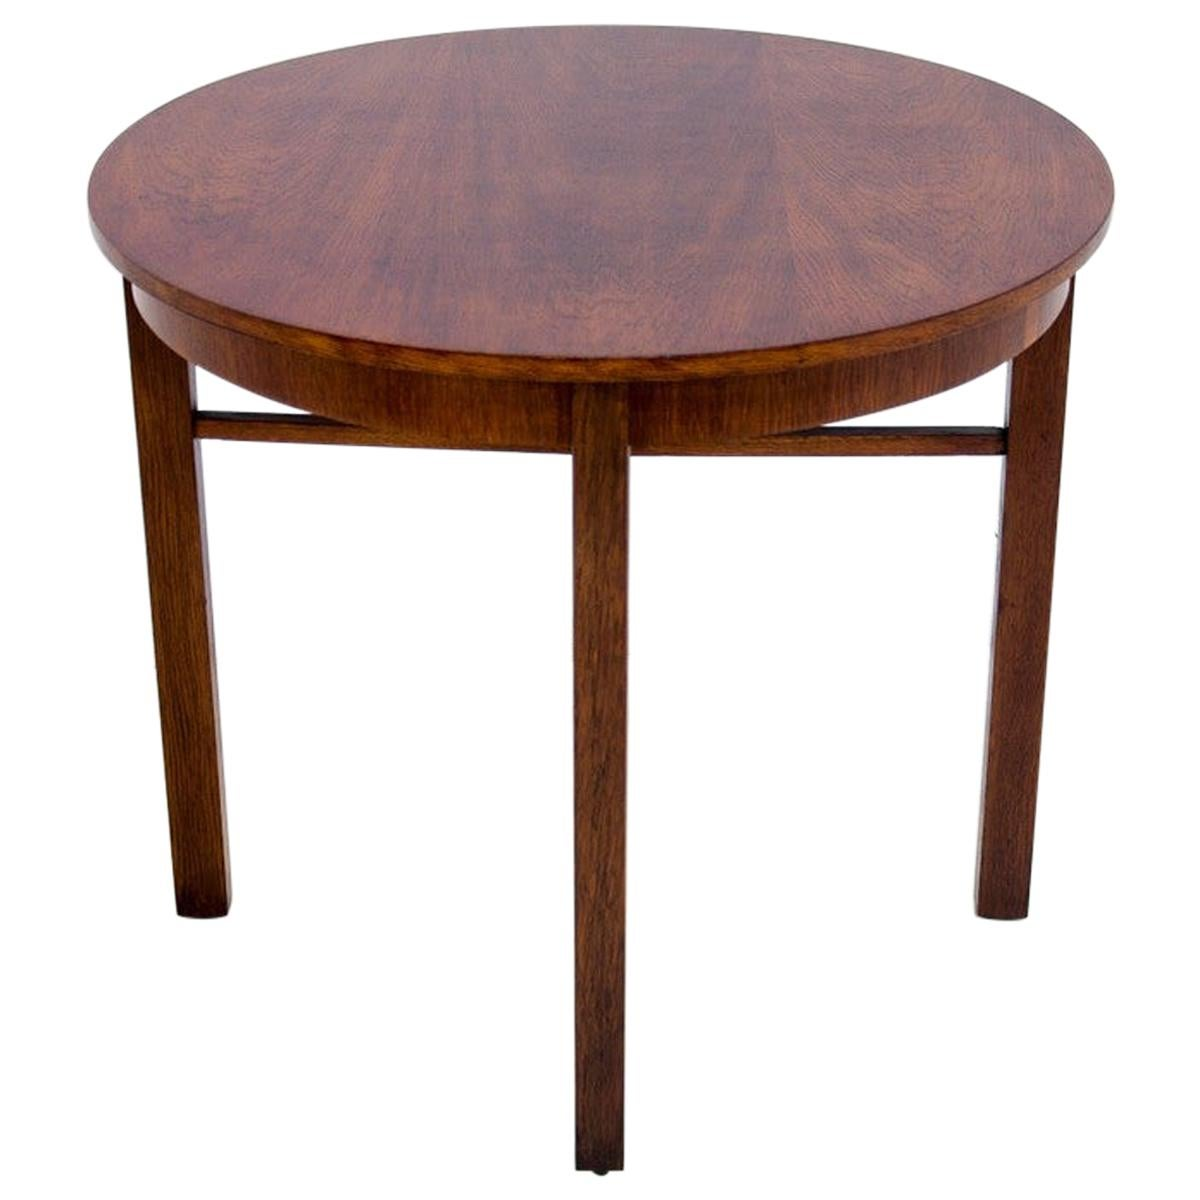 Art Deco Side Coffee Table from 1950s